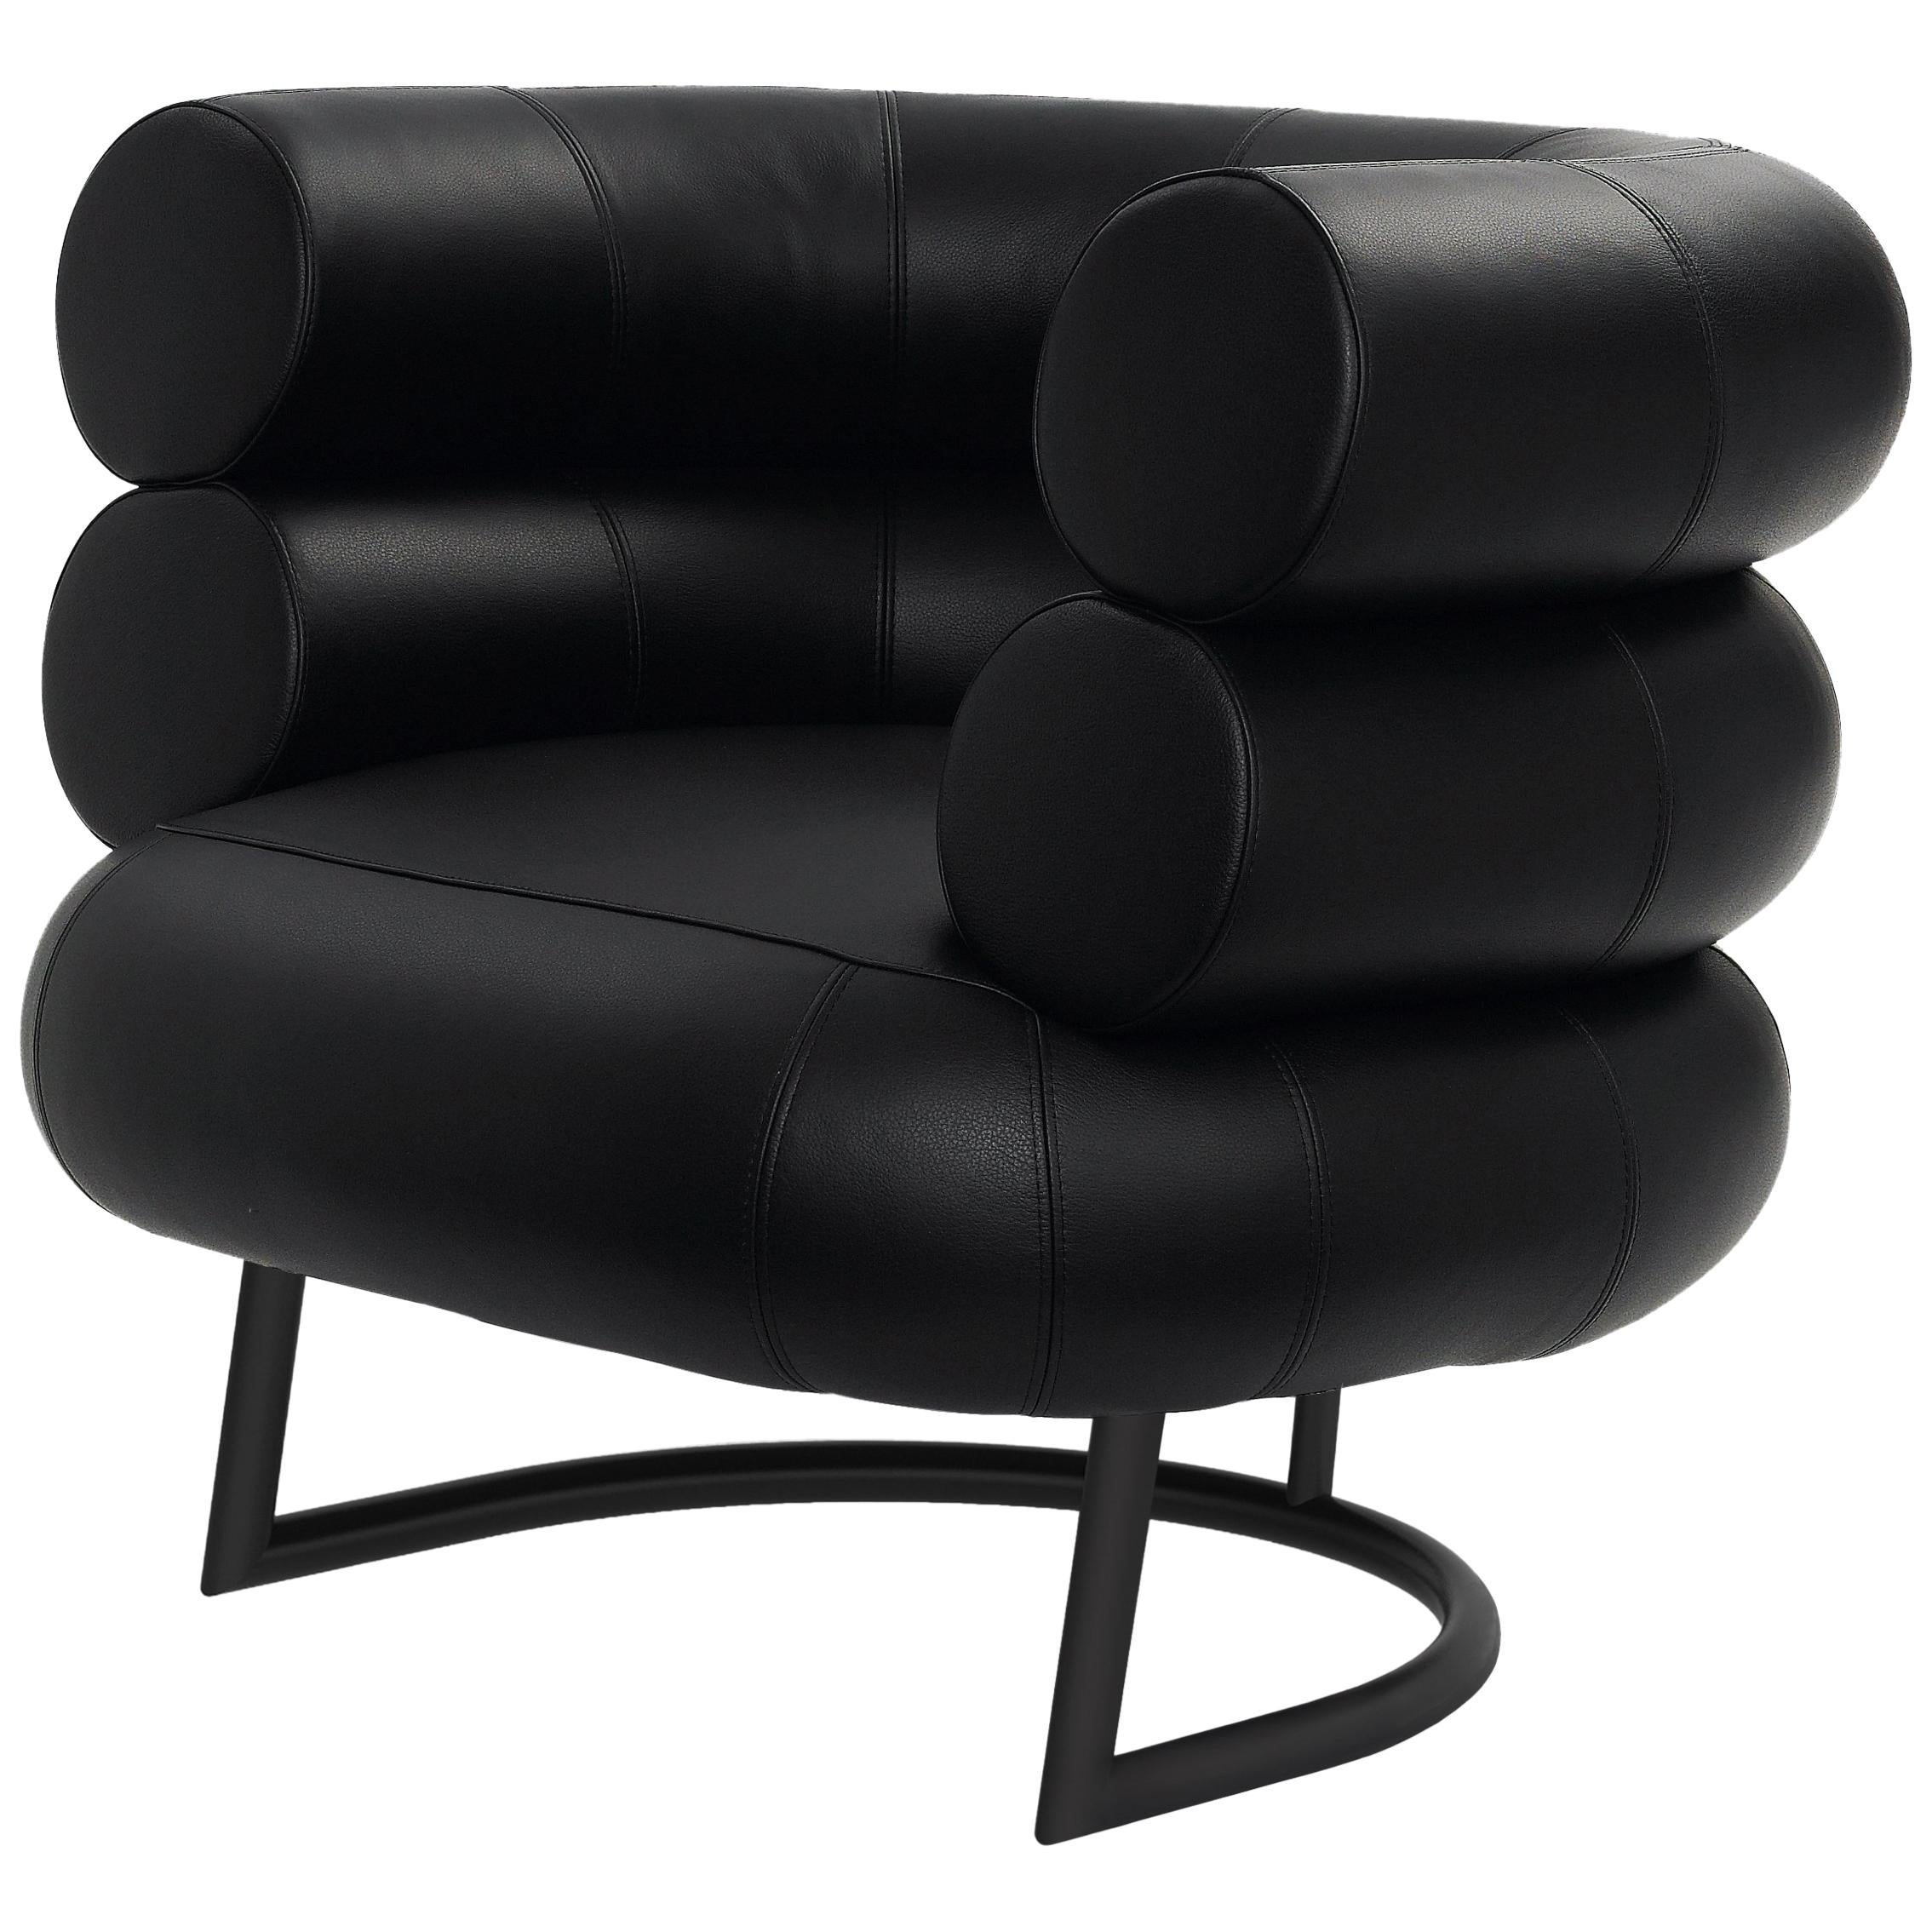 Beau ClassiCon Bibendum Armchair In Black Leather With Black Base By Eileen Gray